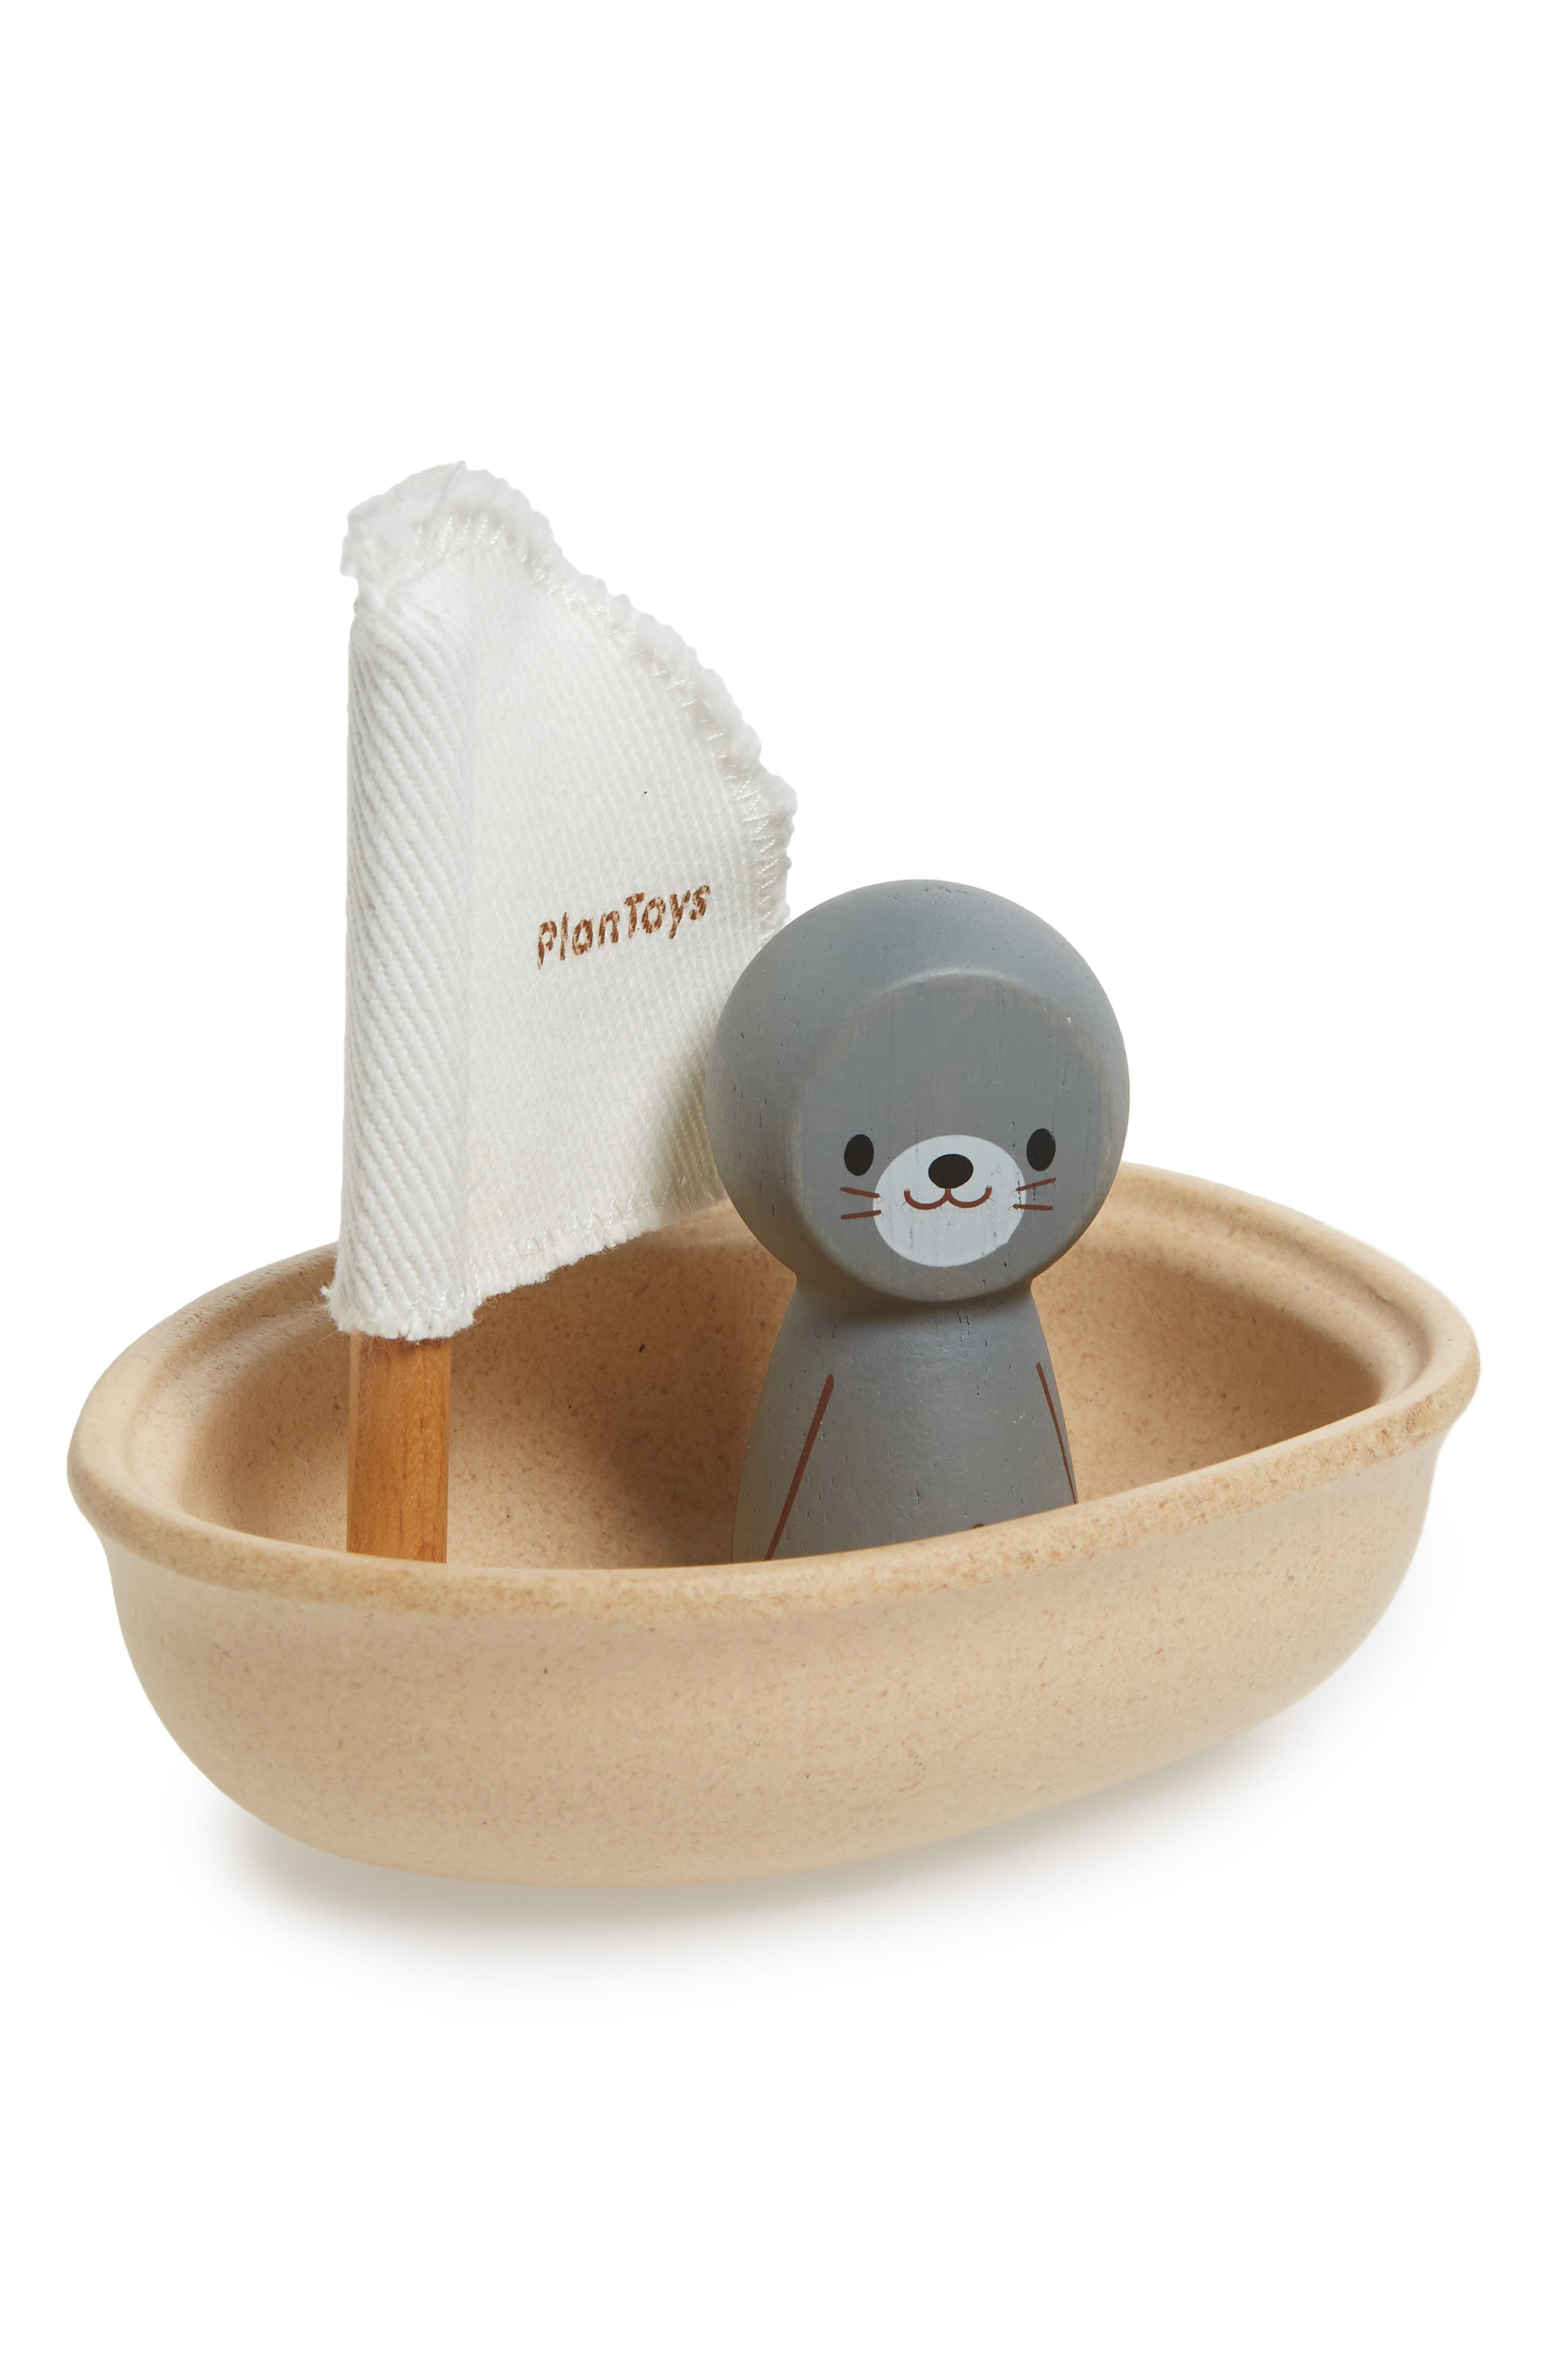 Plan Toys<sup>®</sup> Seal Sailing Boat Toy,                         Main,                         color, 200